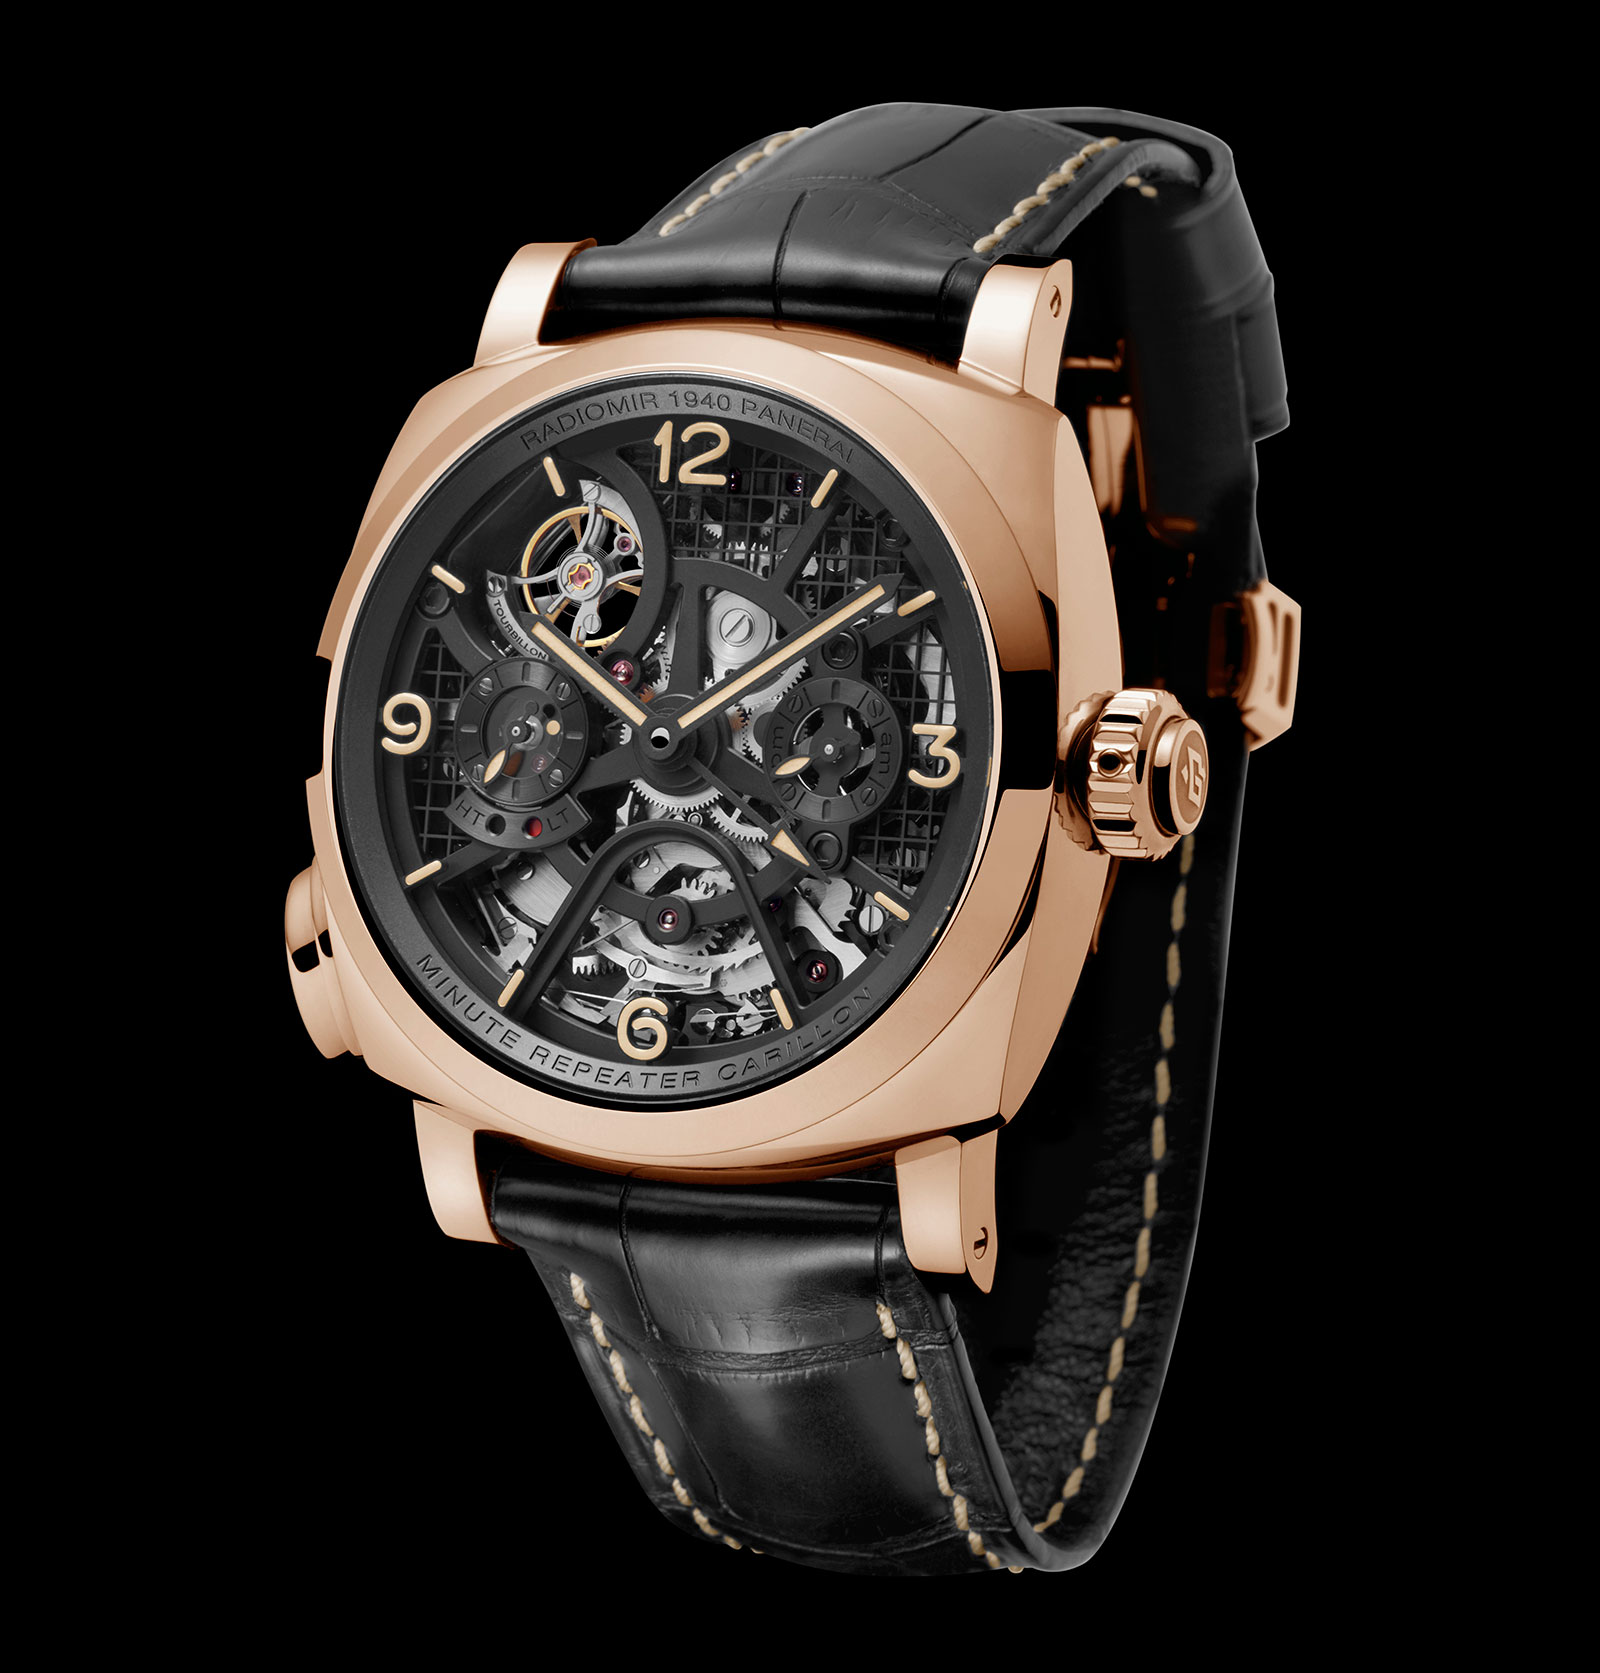 Side of Panerai Radiomir 1940 Minute Repeater Carillon Tourbillon GMT